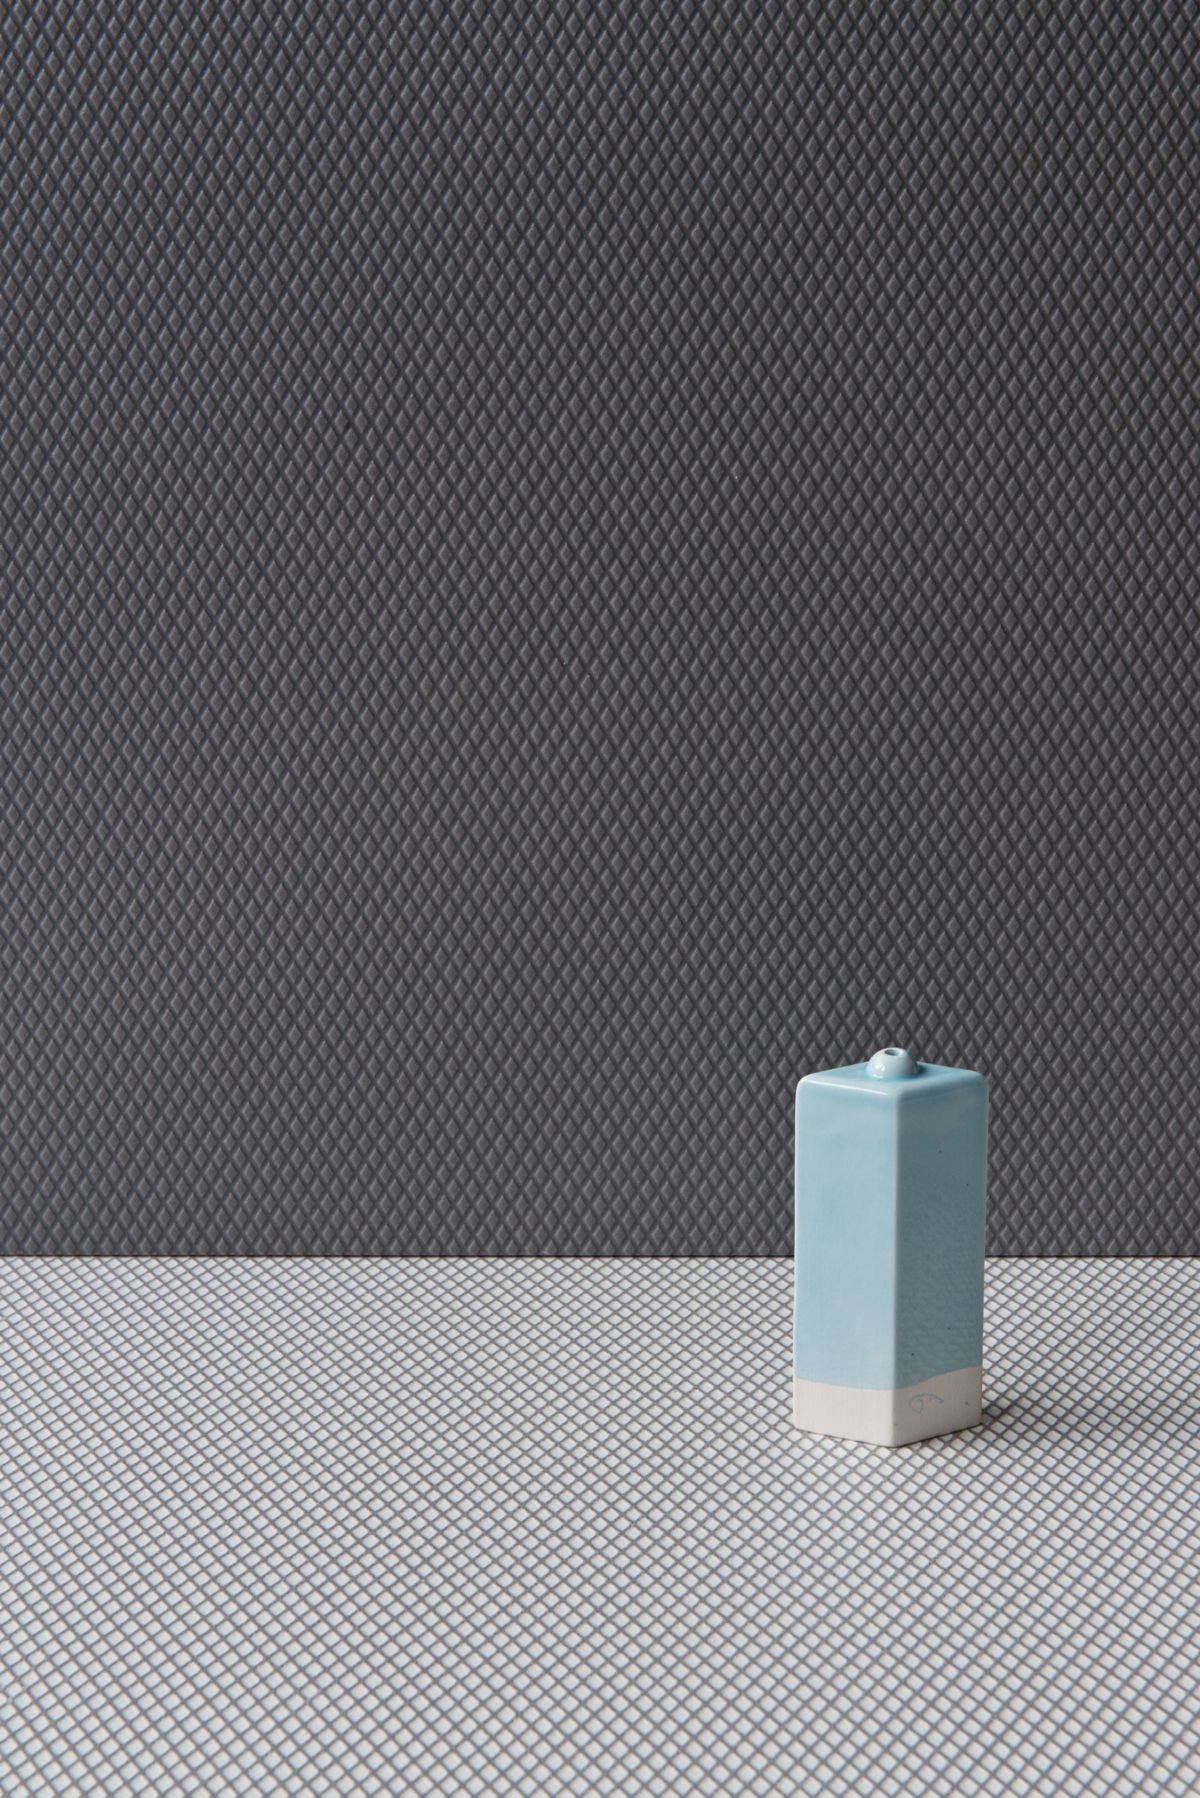 Surface carrelage collection Rombini Bouroullec Surface